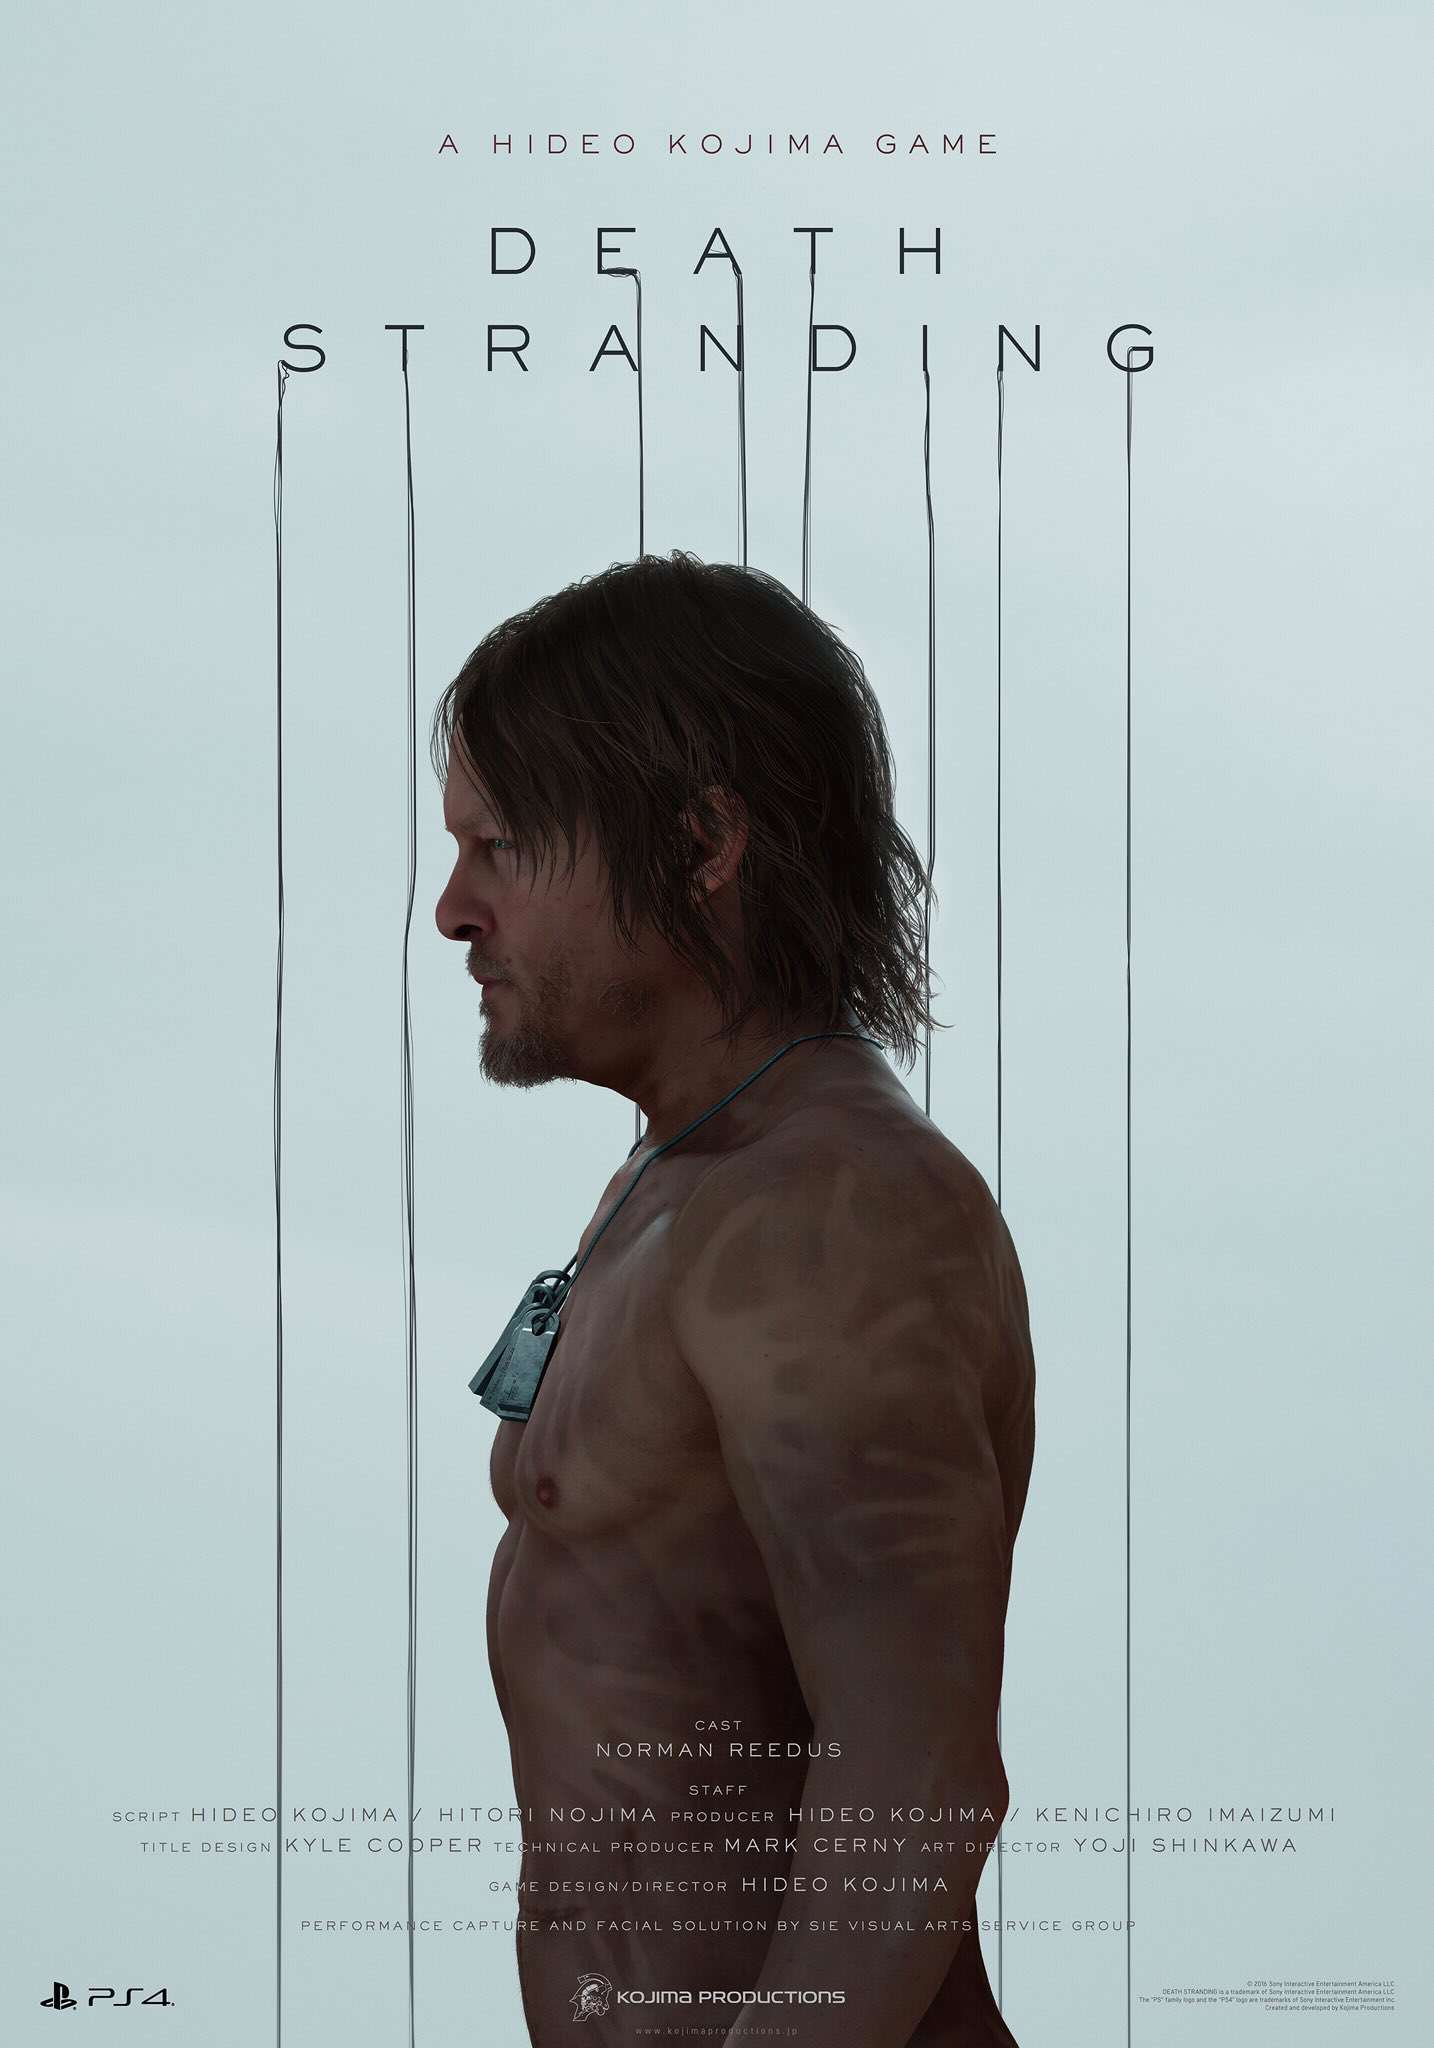 Ck5bhQAUoAA3UxL Death Stranding Unveiled By Hideo Kojima